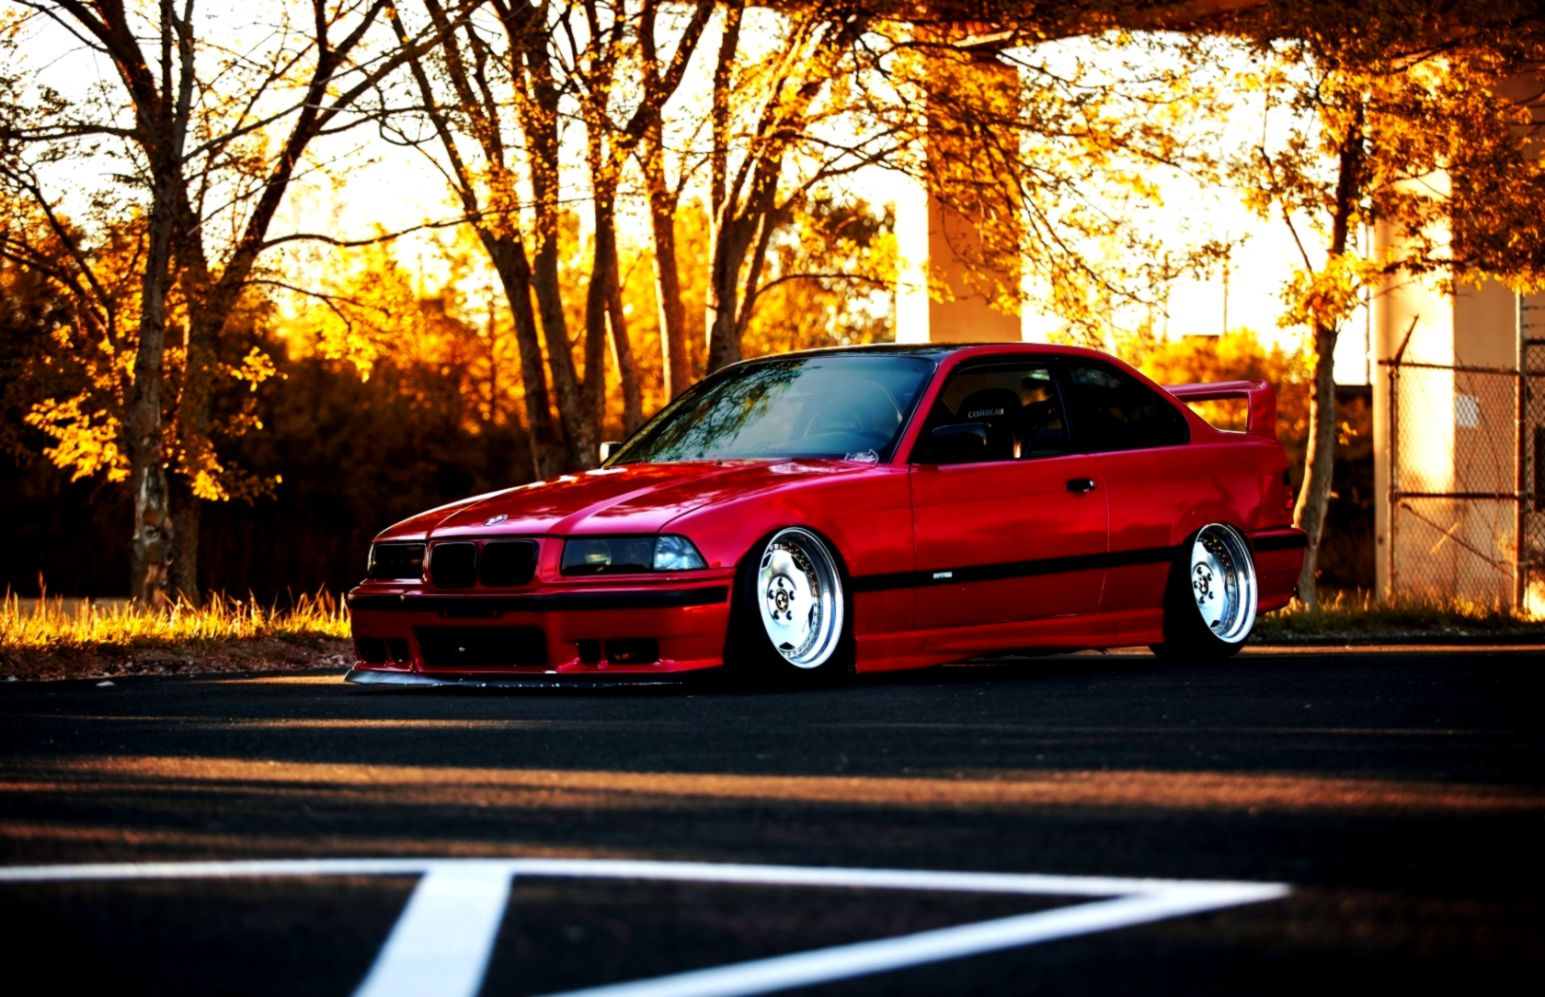 Bmw E36 Red Car Tuning Autumn Hd Wallpaper Wallpapers Inspire